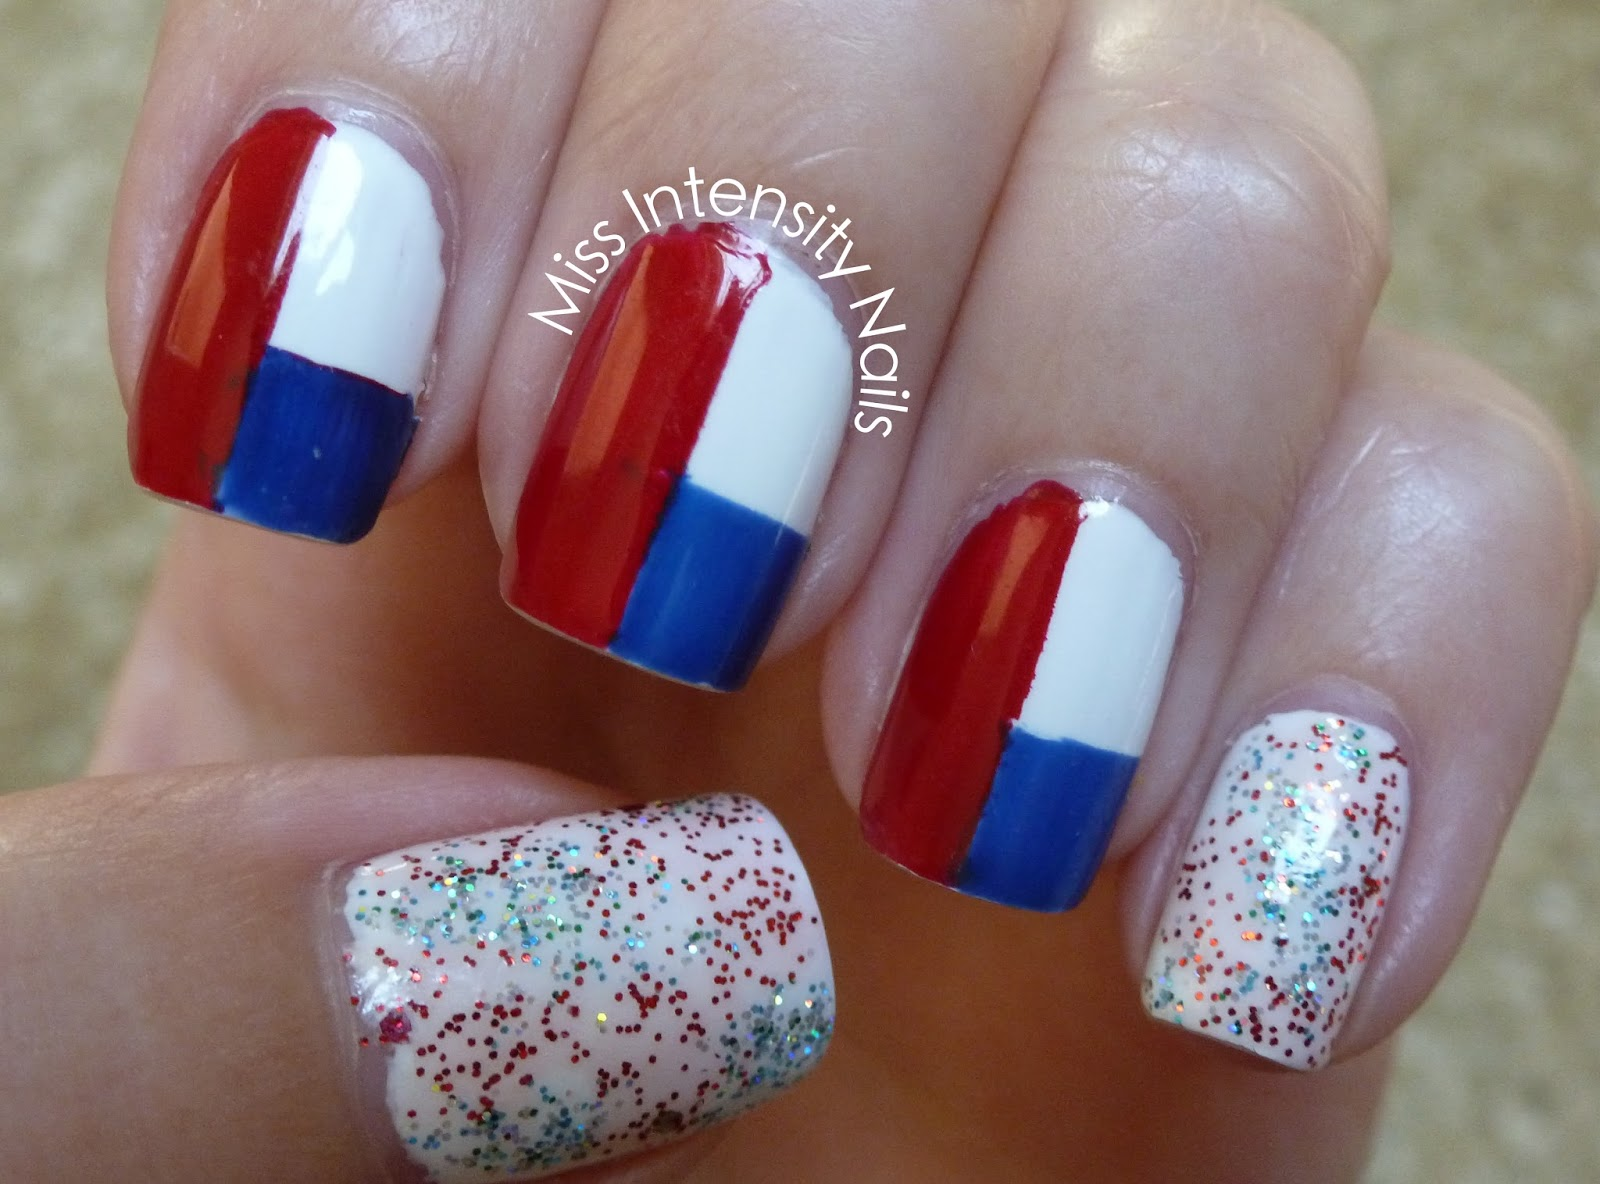 Miss Intensity Nails: NOTD - Fourth of July Nails